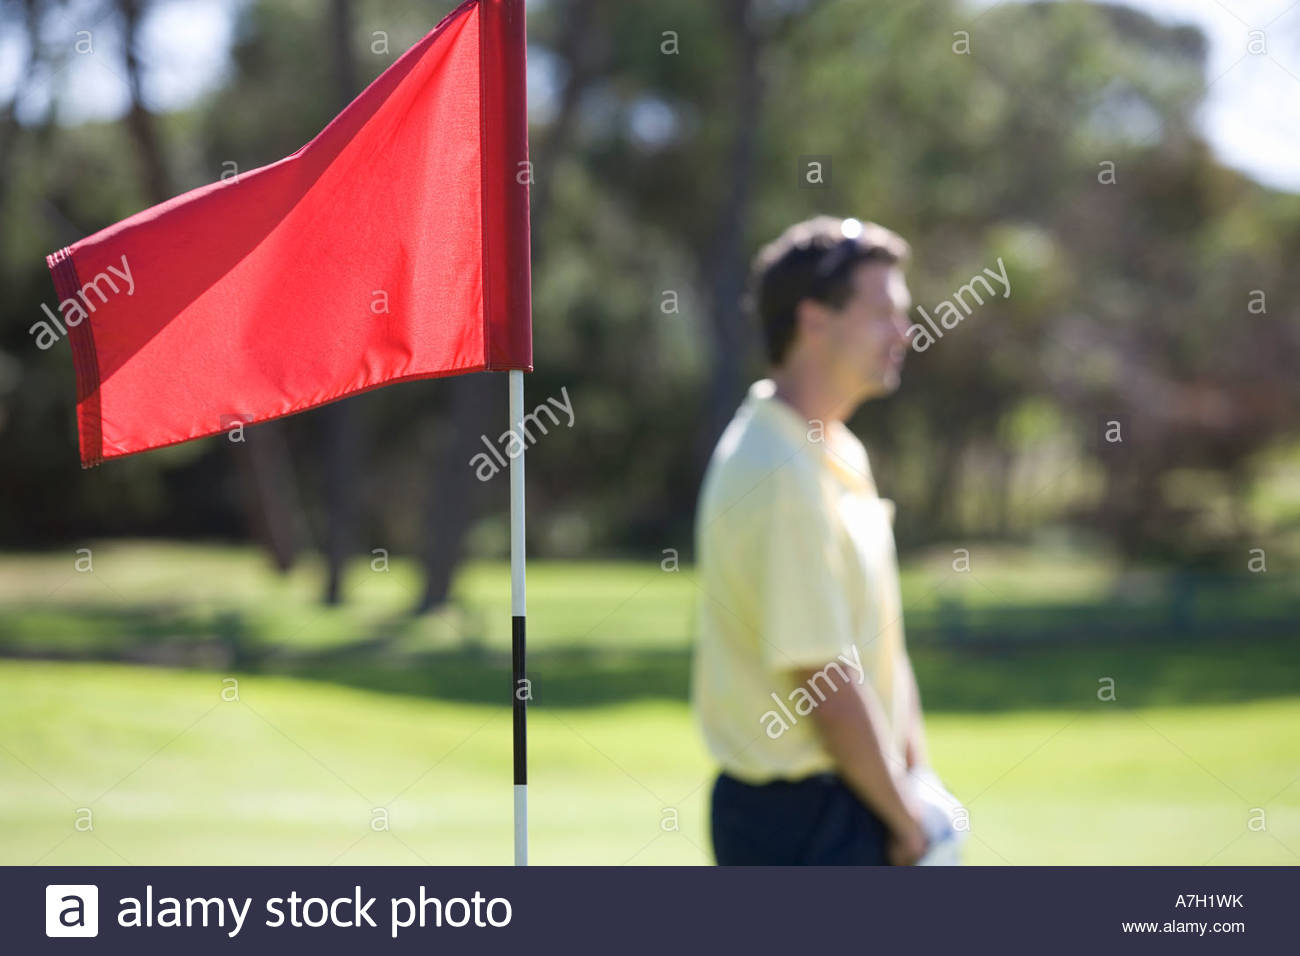 Flag on a golf course, close-up - Stock Image